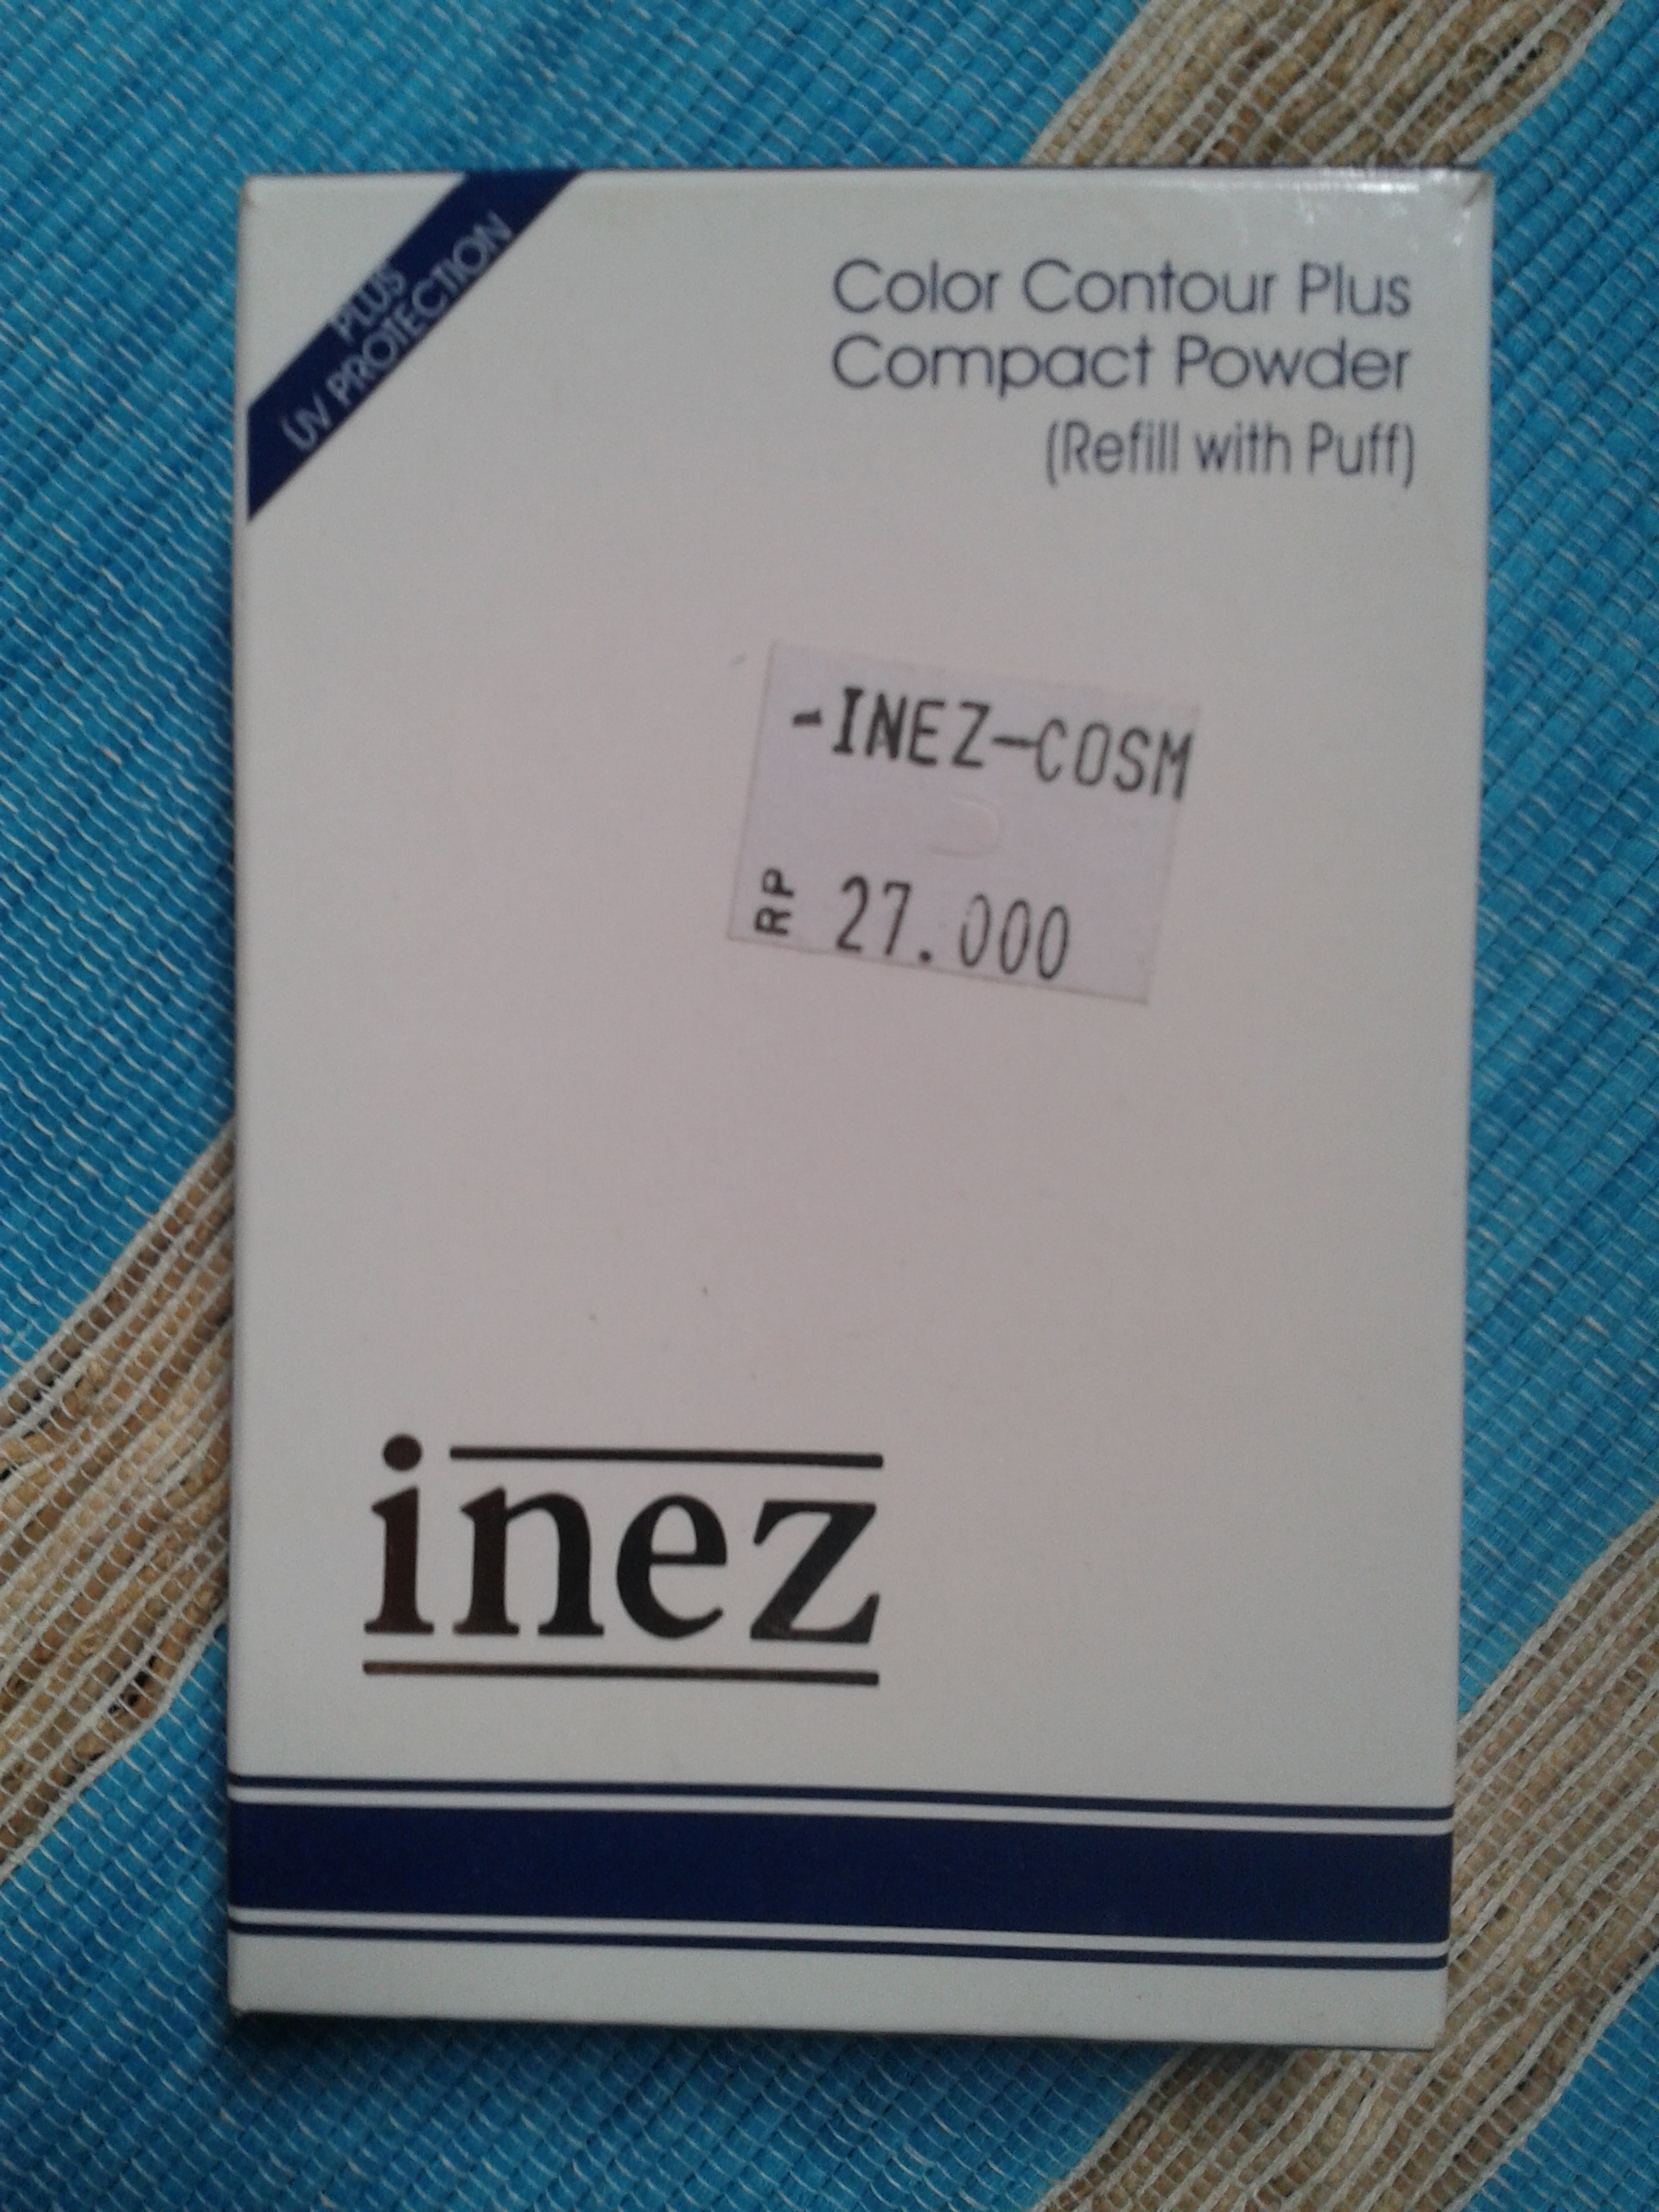 REVIEW INEZ COMPACT POWDER